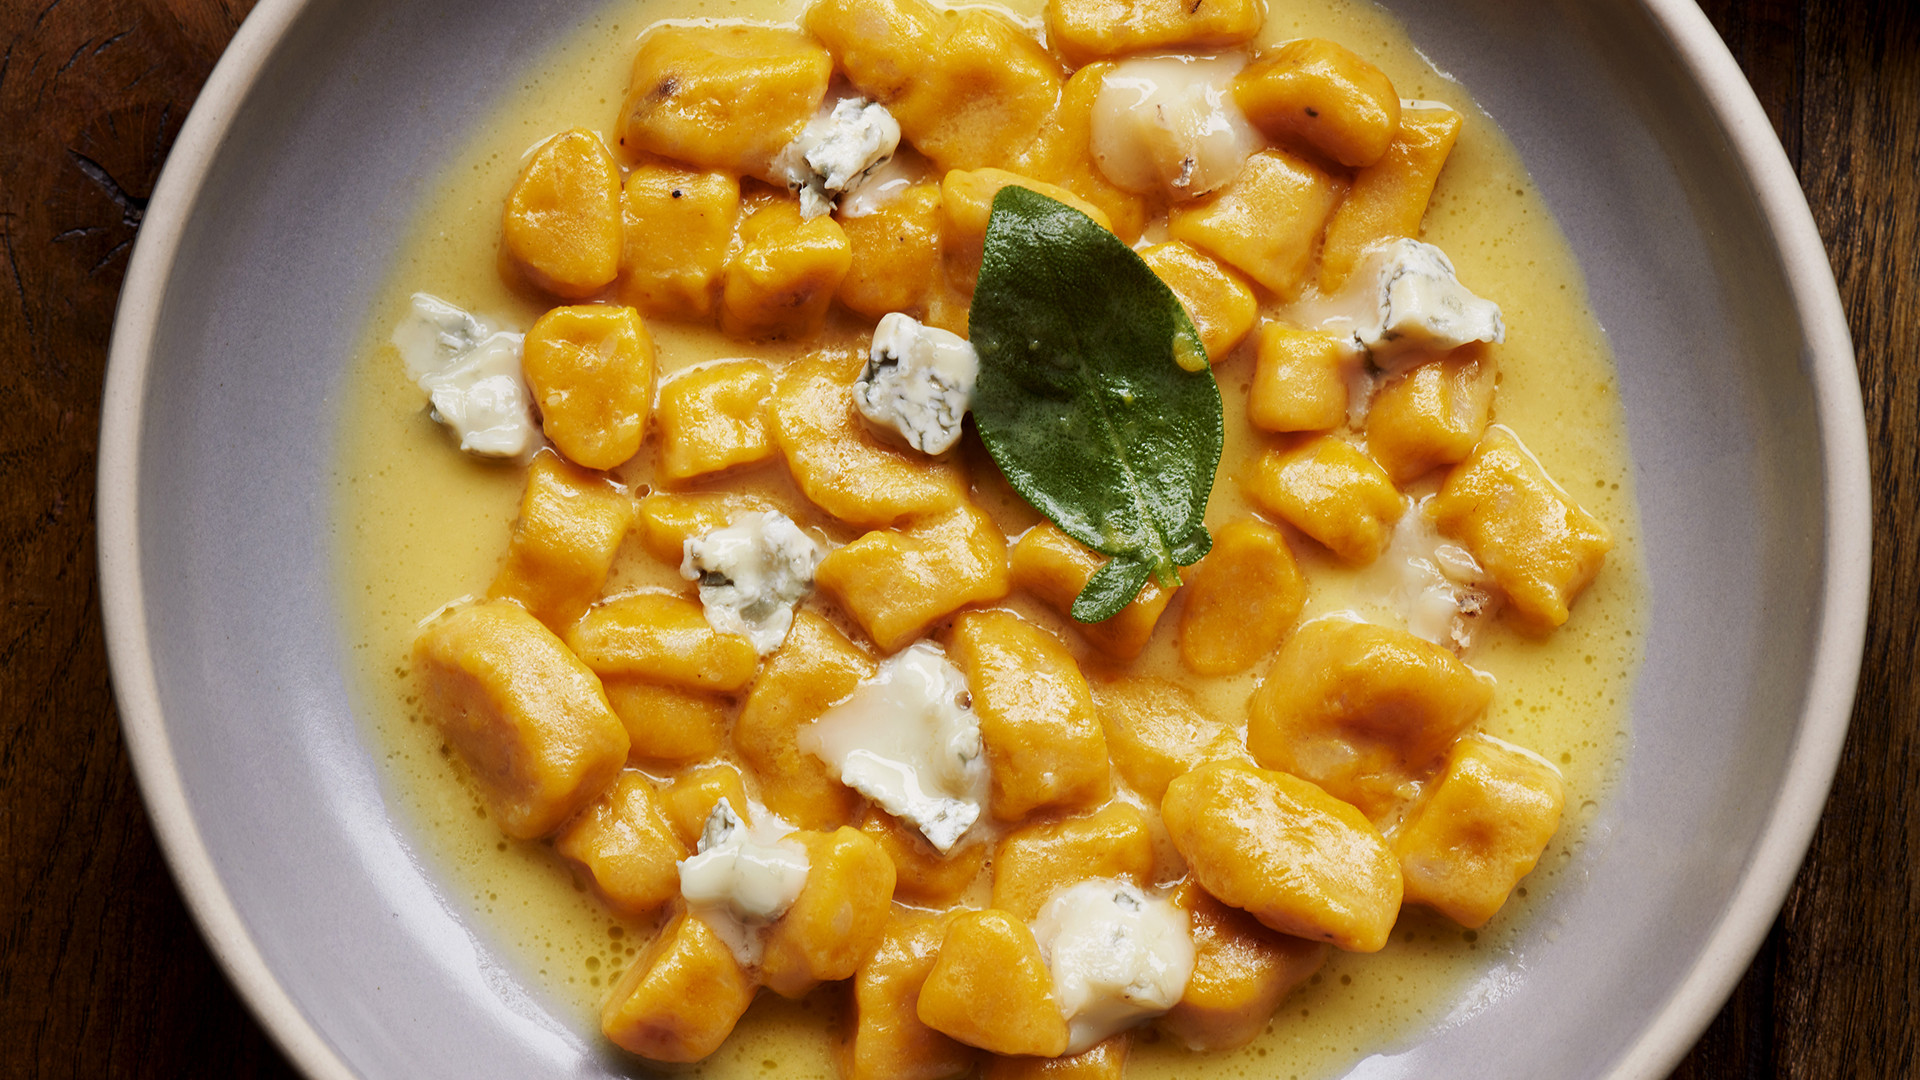 Pumpkin gnocchi with brown butter, sage, and gorgonzola at Officina 00